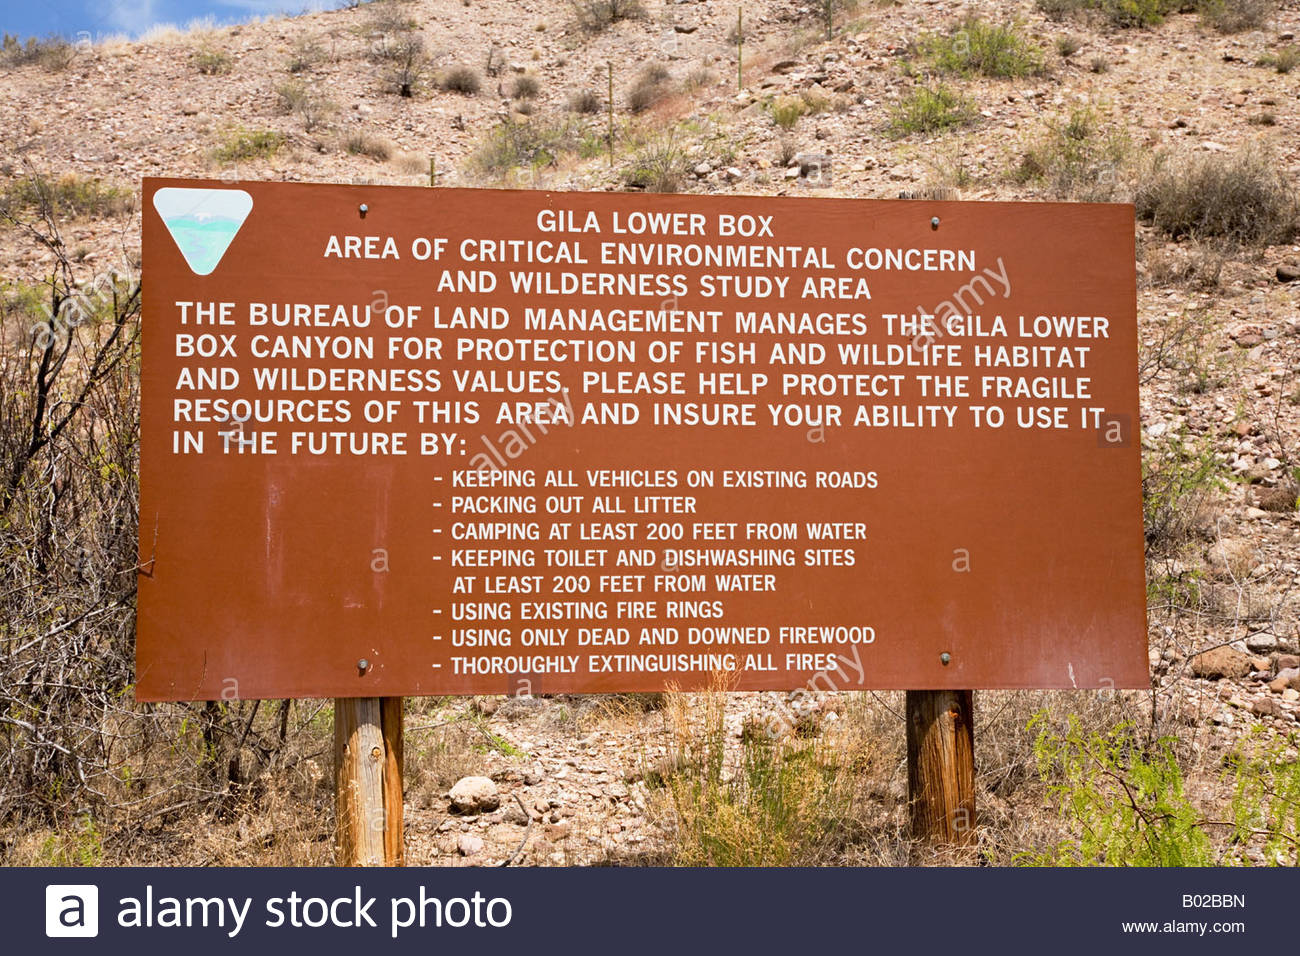 Sign Gila Lower Box information Area of Critical Environmental Concern - Stock Image